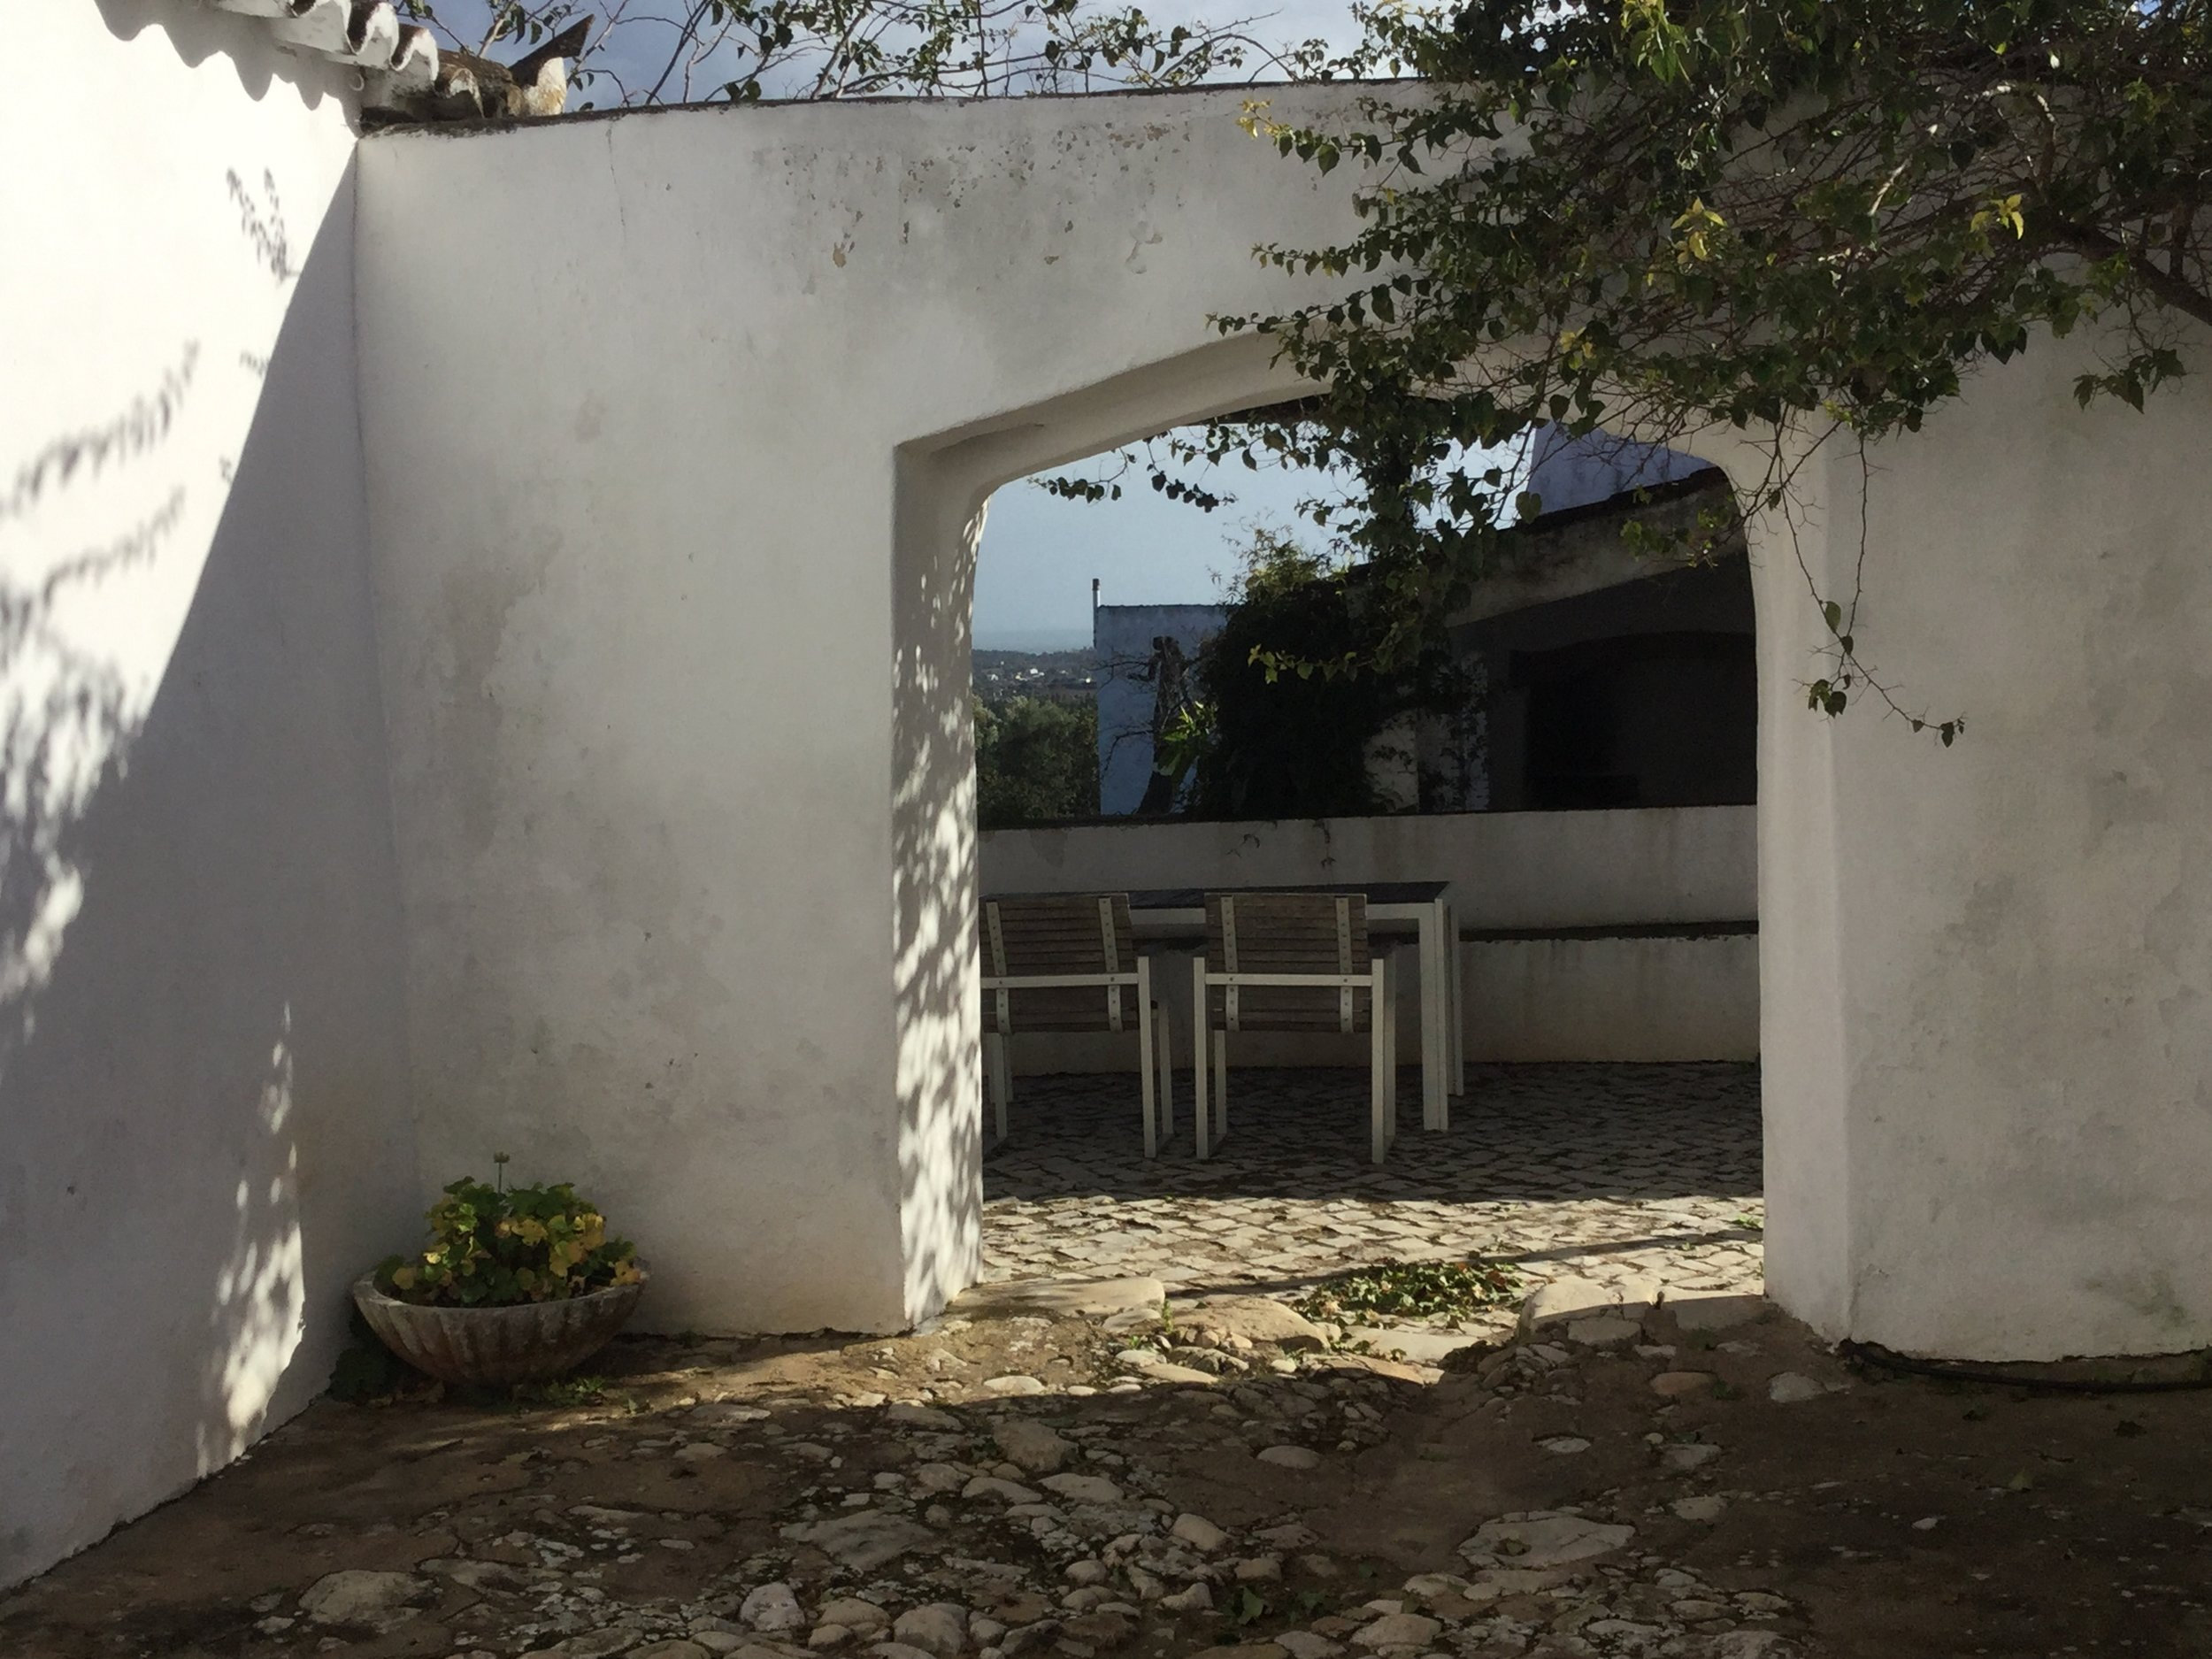 Private terrace. There is an additional bedroom and bath in a separate building off the terrace